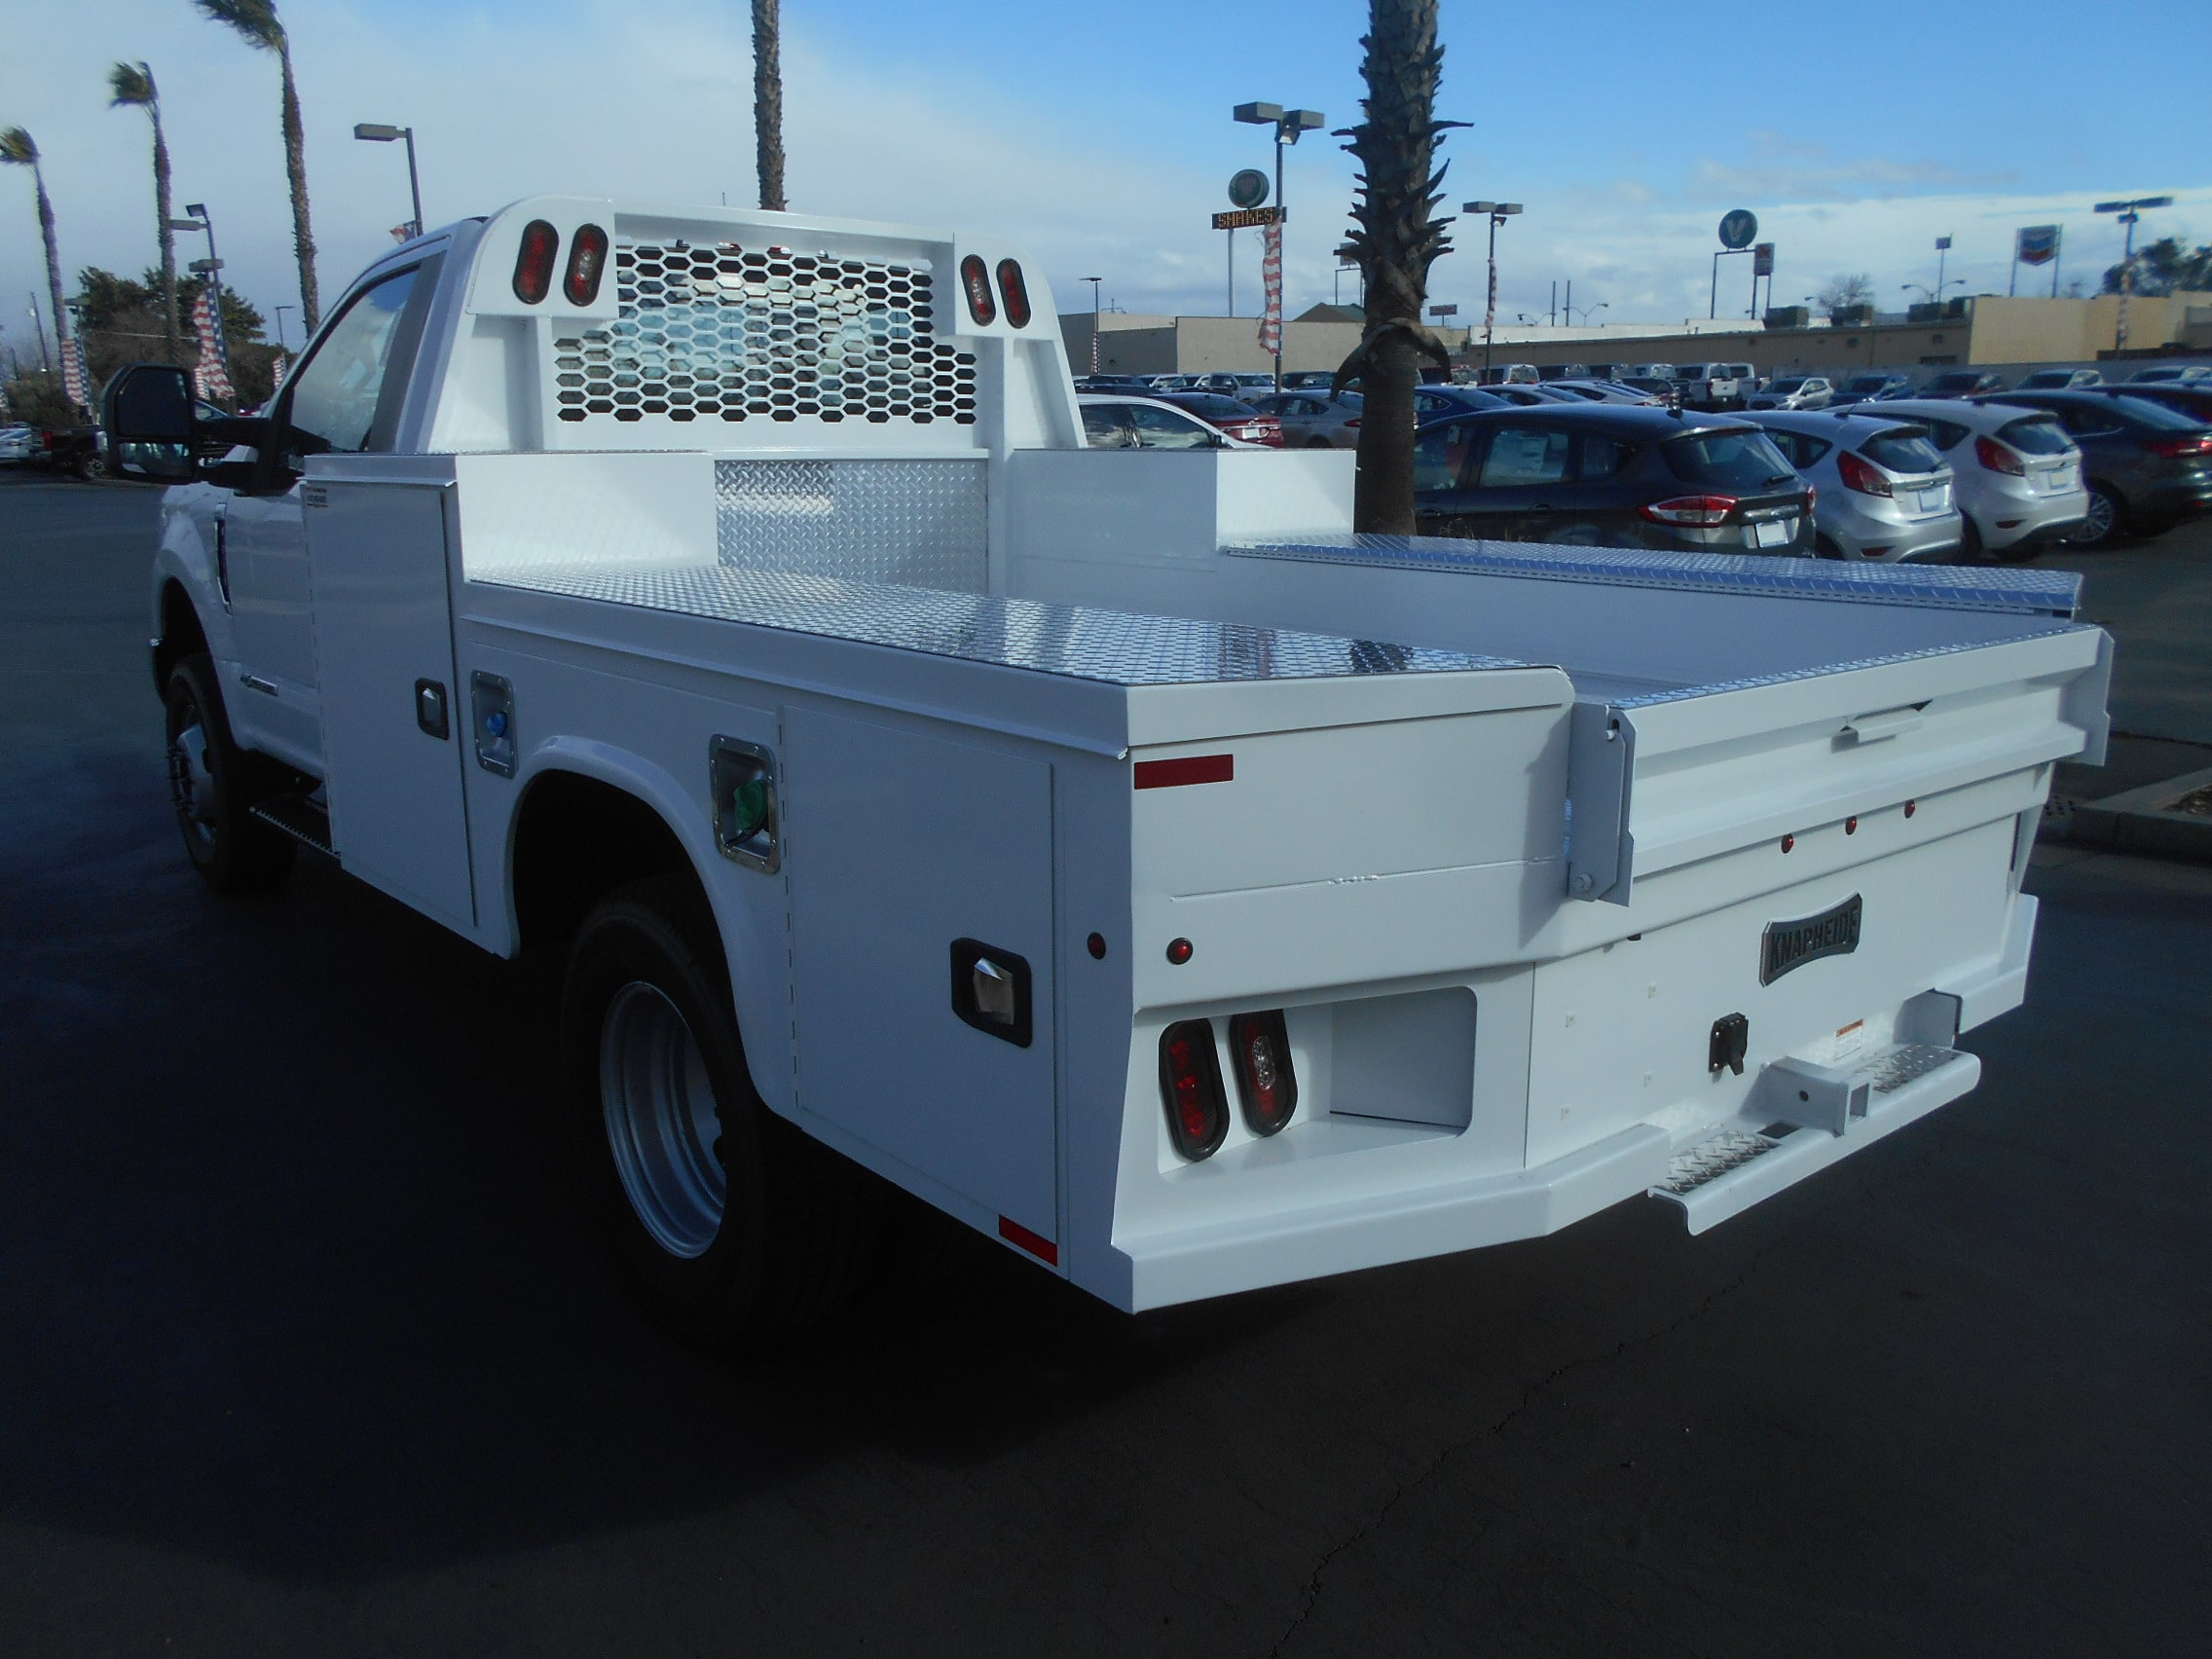 2017 F-350 Regular Cab DRW 4x4, Knapheide Hauler Body #52627 - photo 2